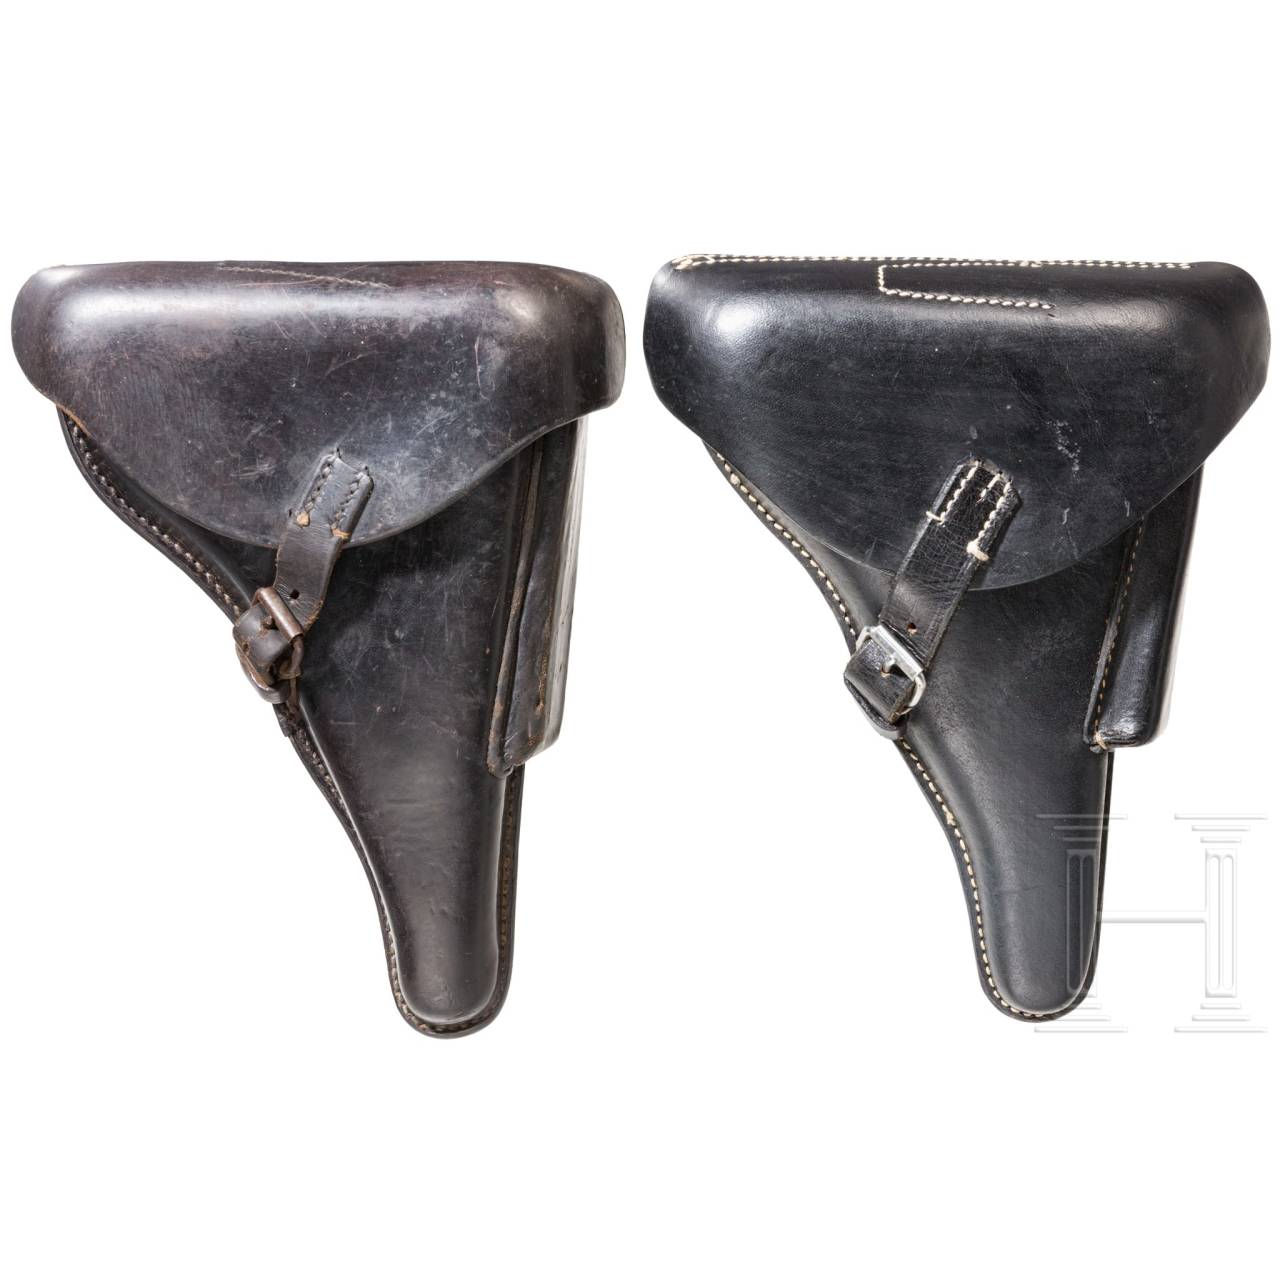 Two hard-shell holsters for the Pistol 08, Wehrmacht